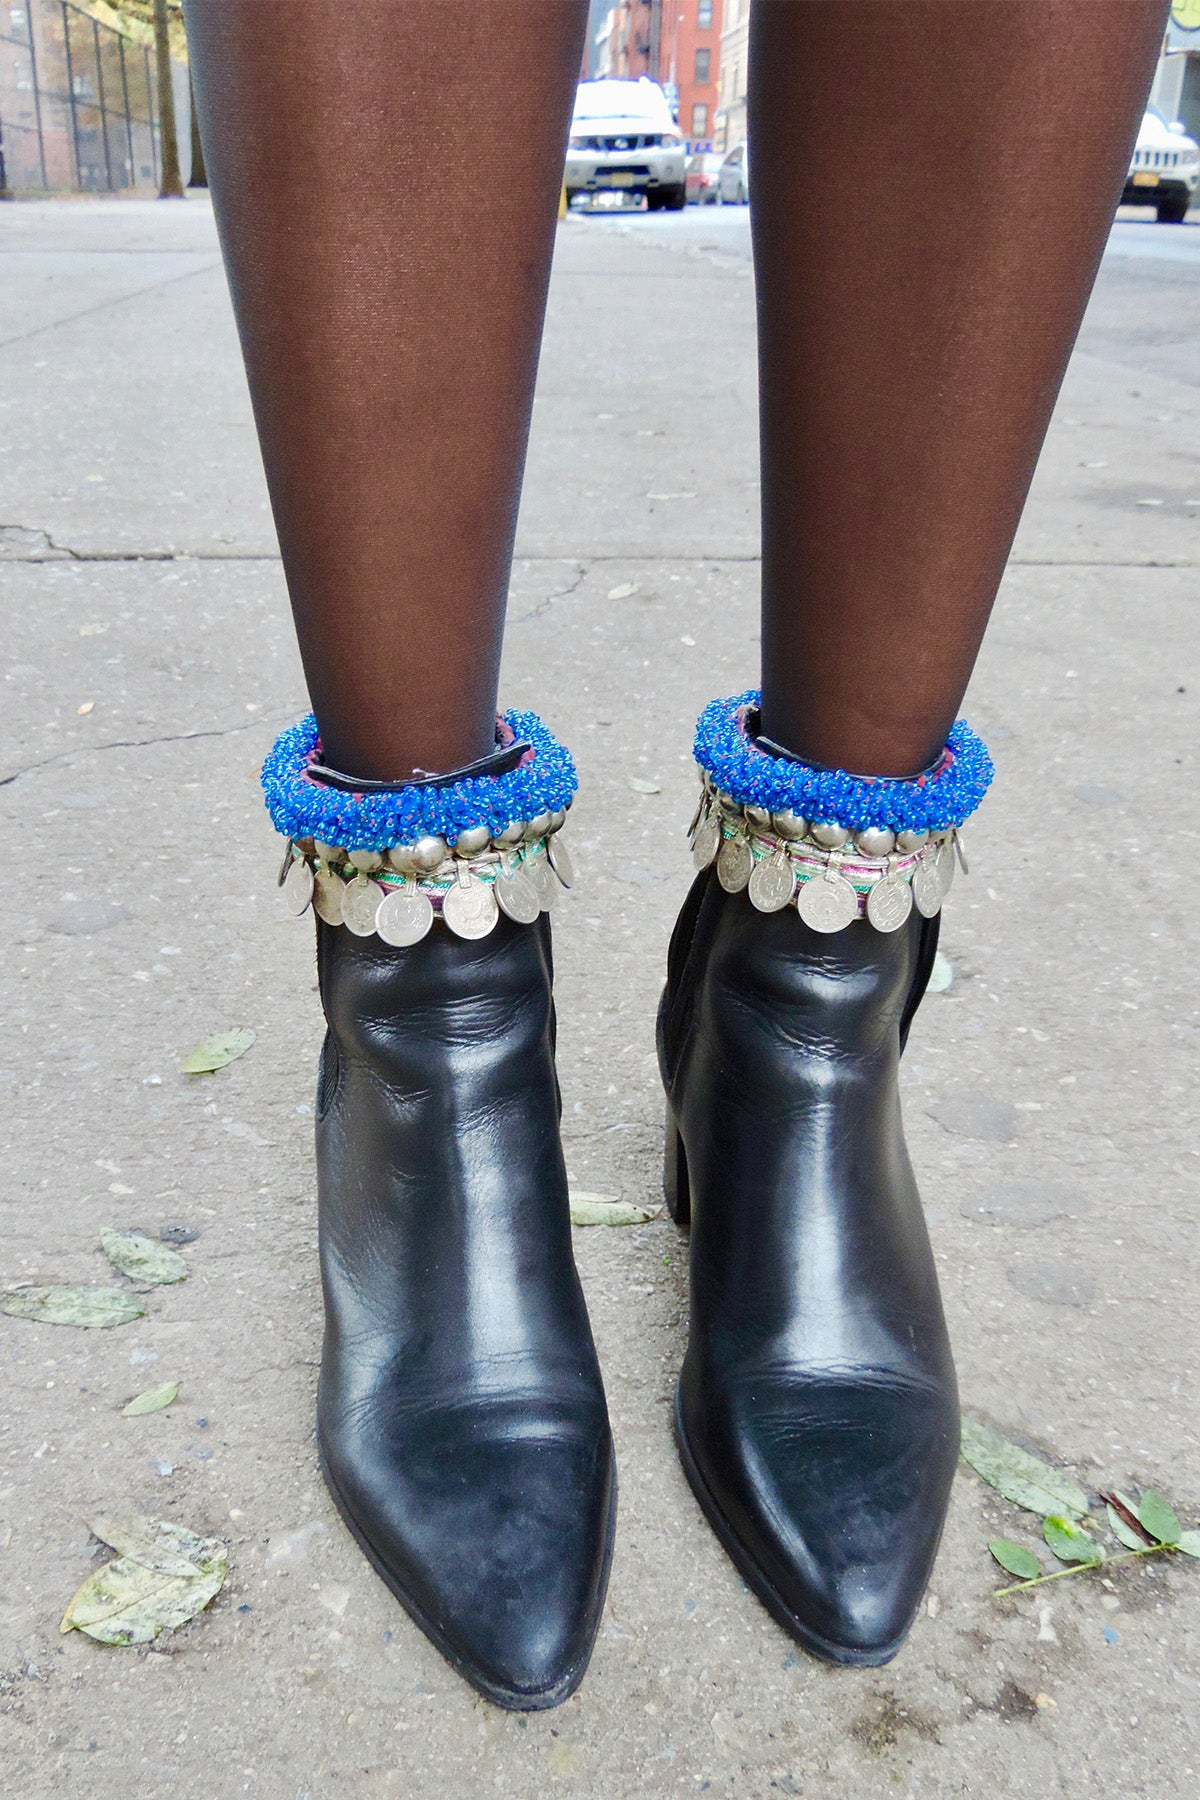 Afghan Vintage Boot Adornments With Coins